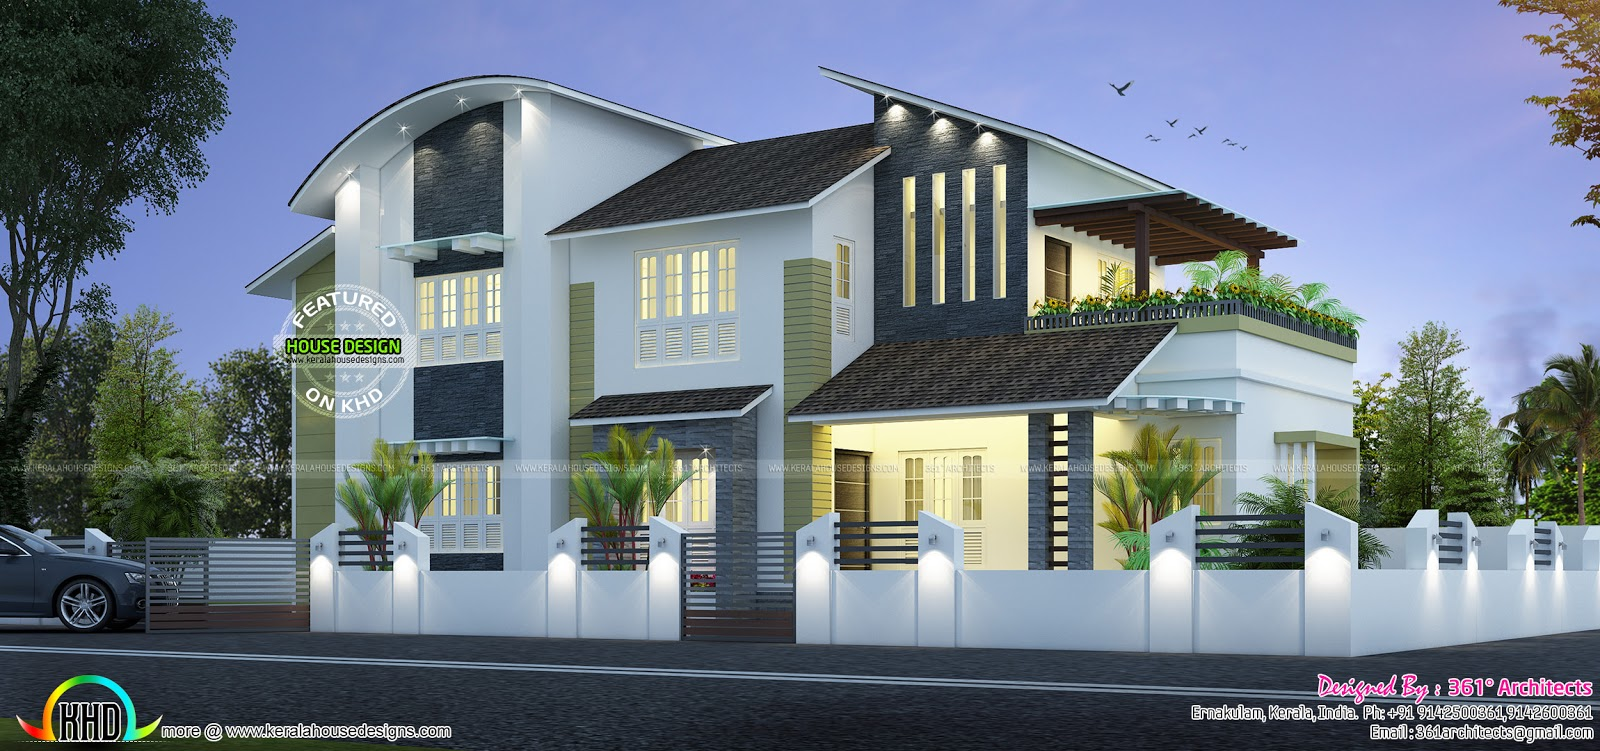 New modern house 35 lakhs kerala home design and floor plans for New house design